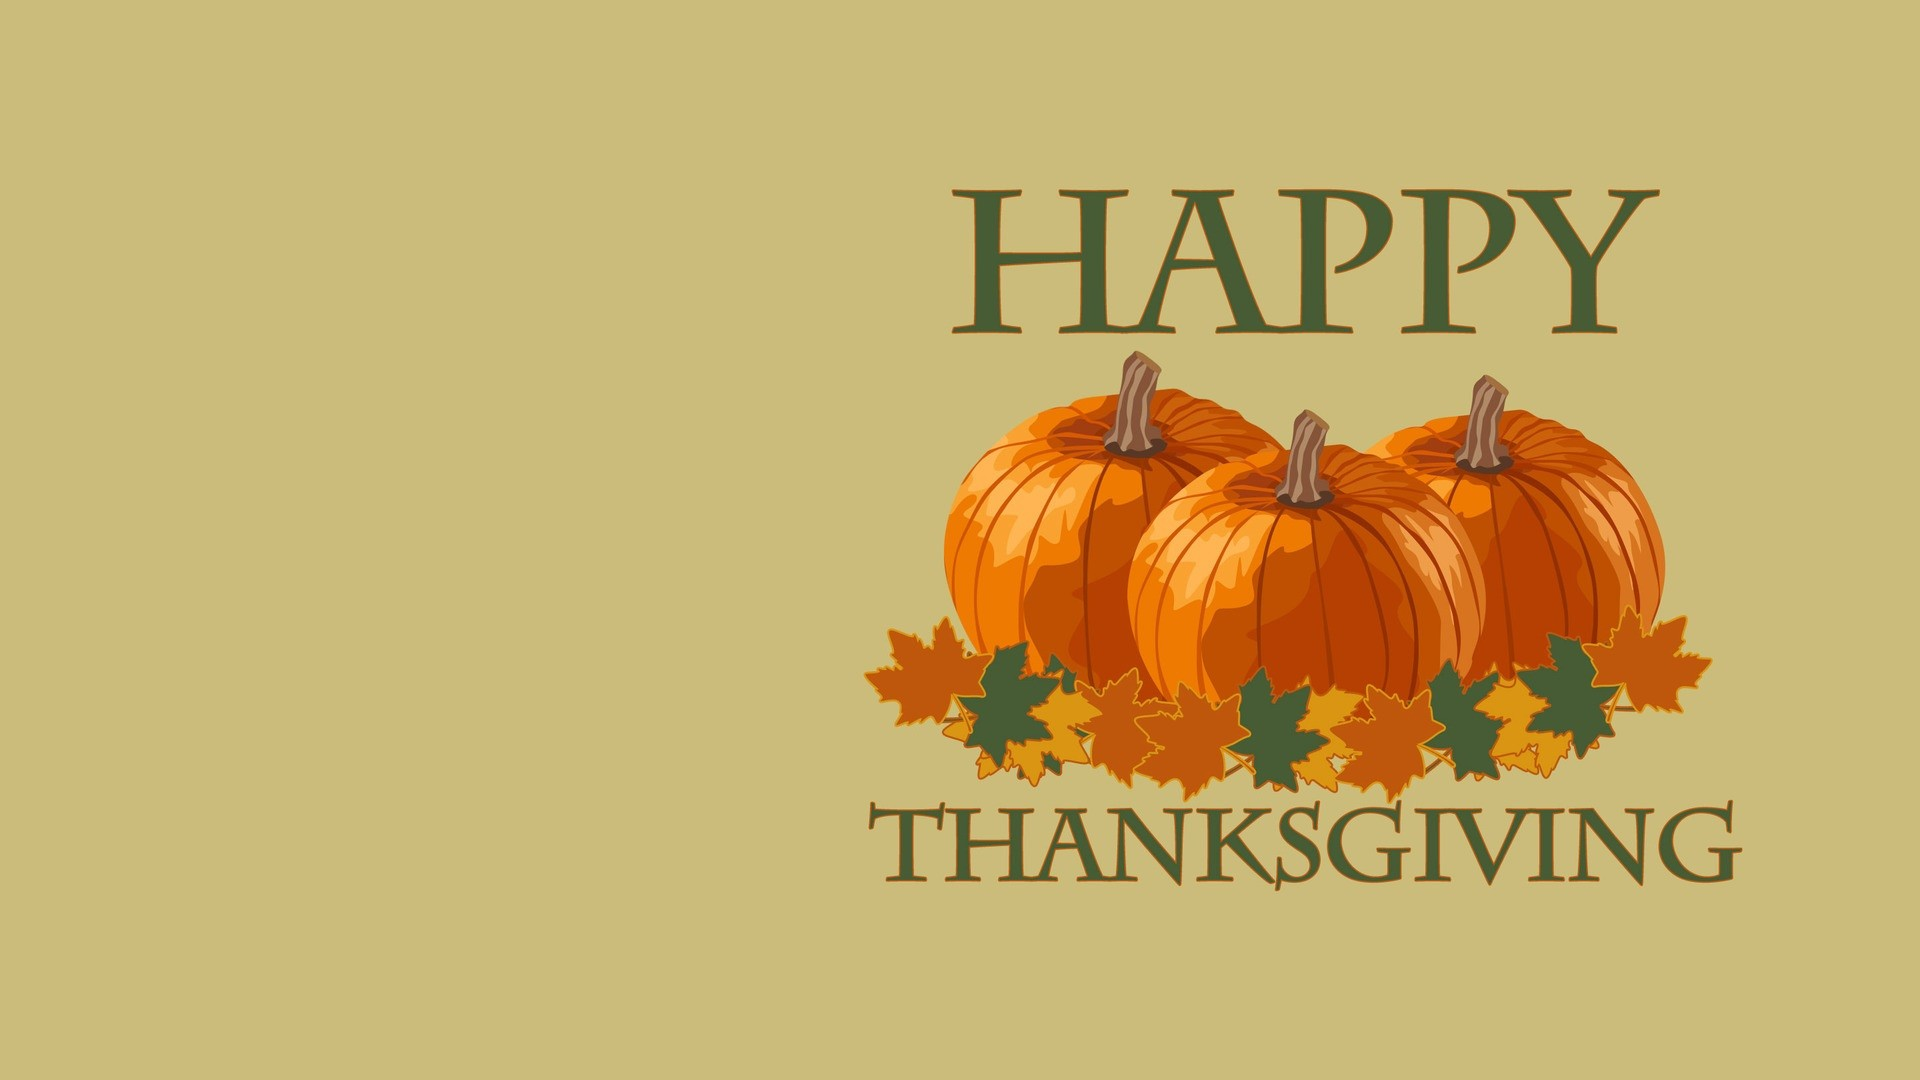 1920x1080 Thanksgiving wallpapers 2013, 2013 Thanksgiving day greetings .